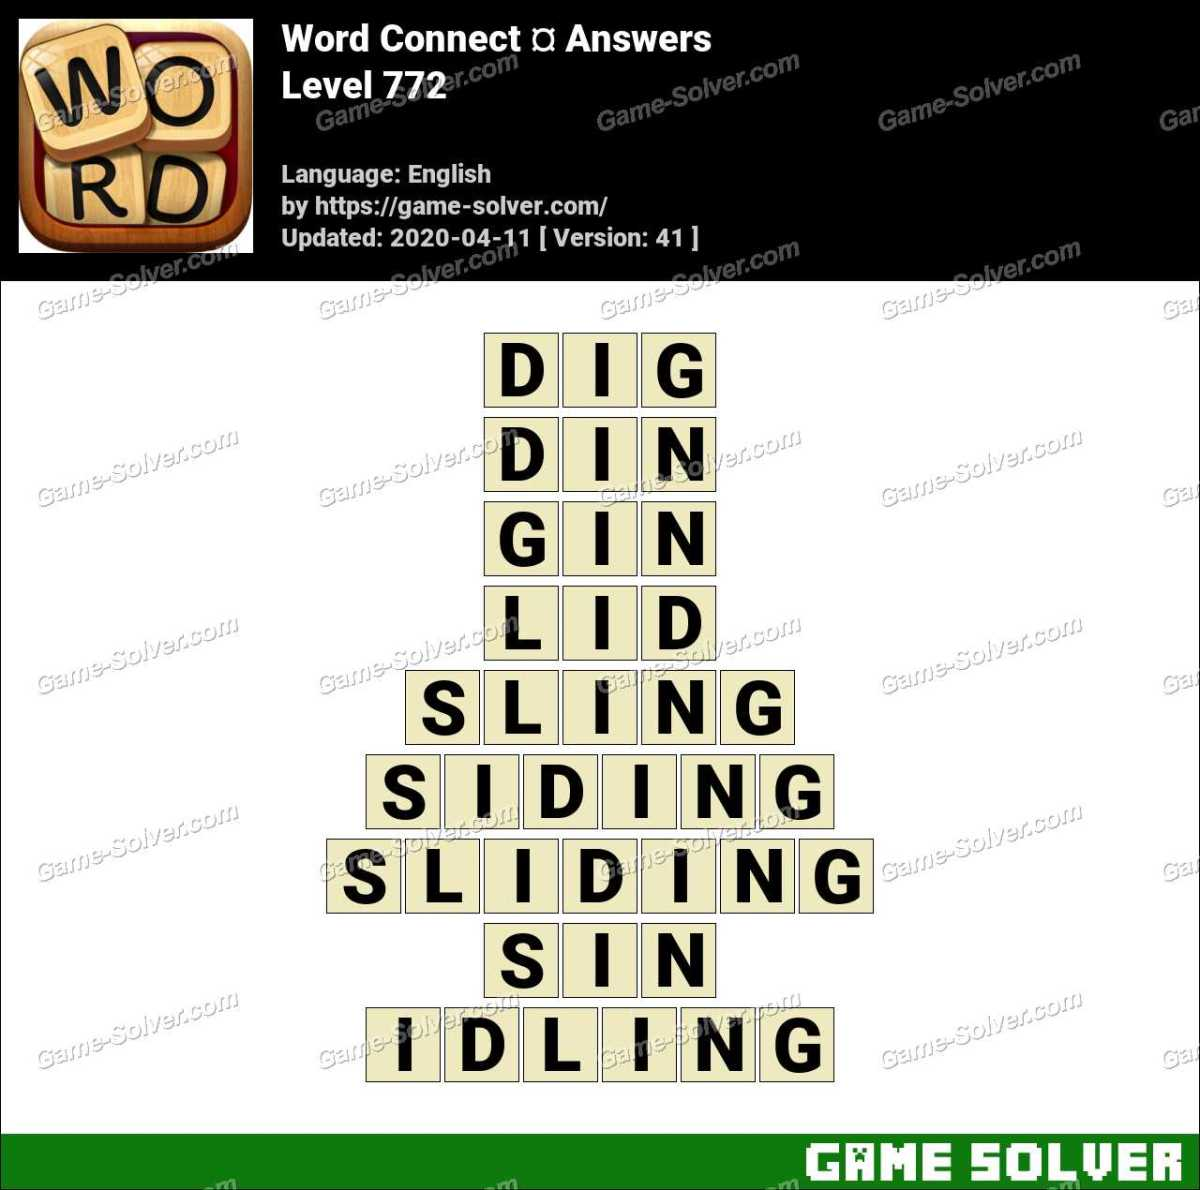 Word Connect Level 772 Answers